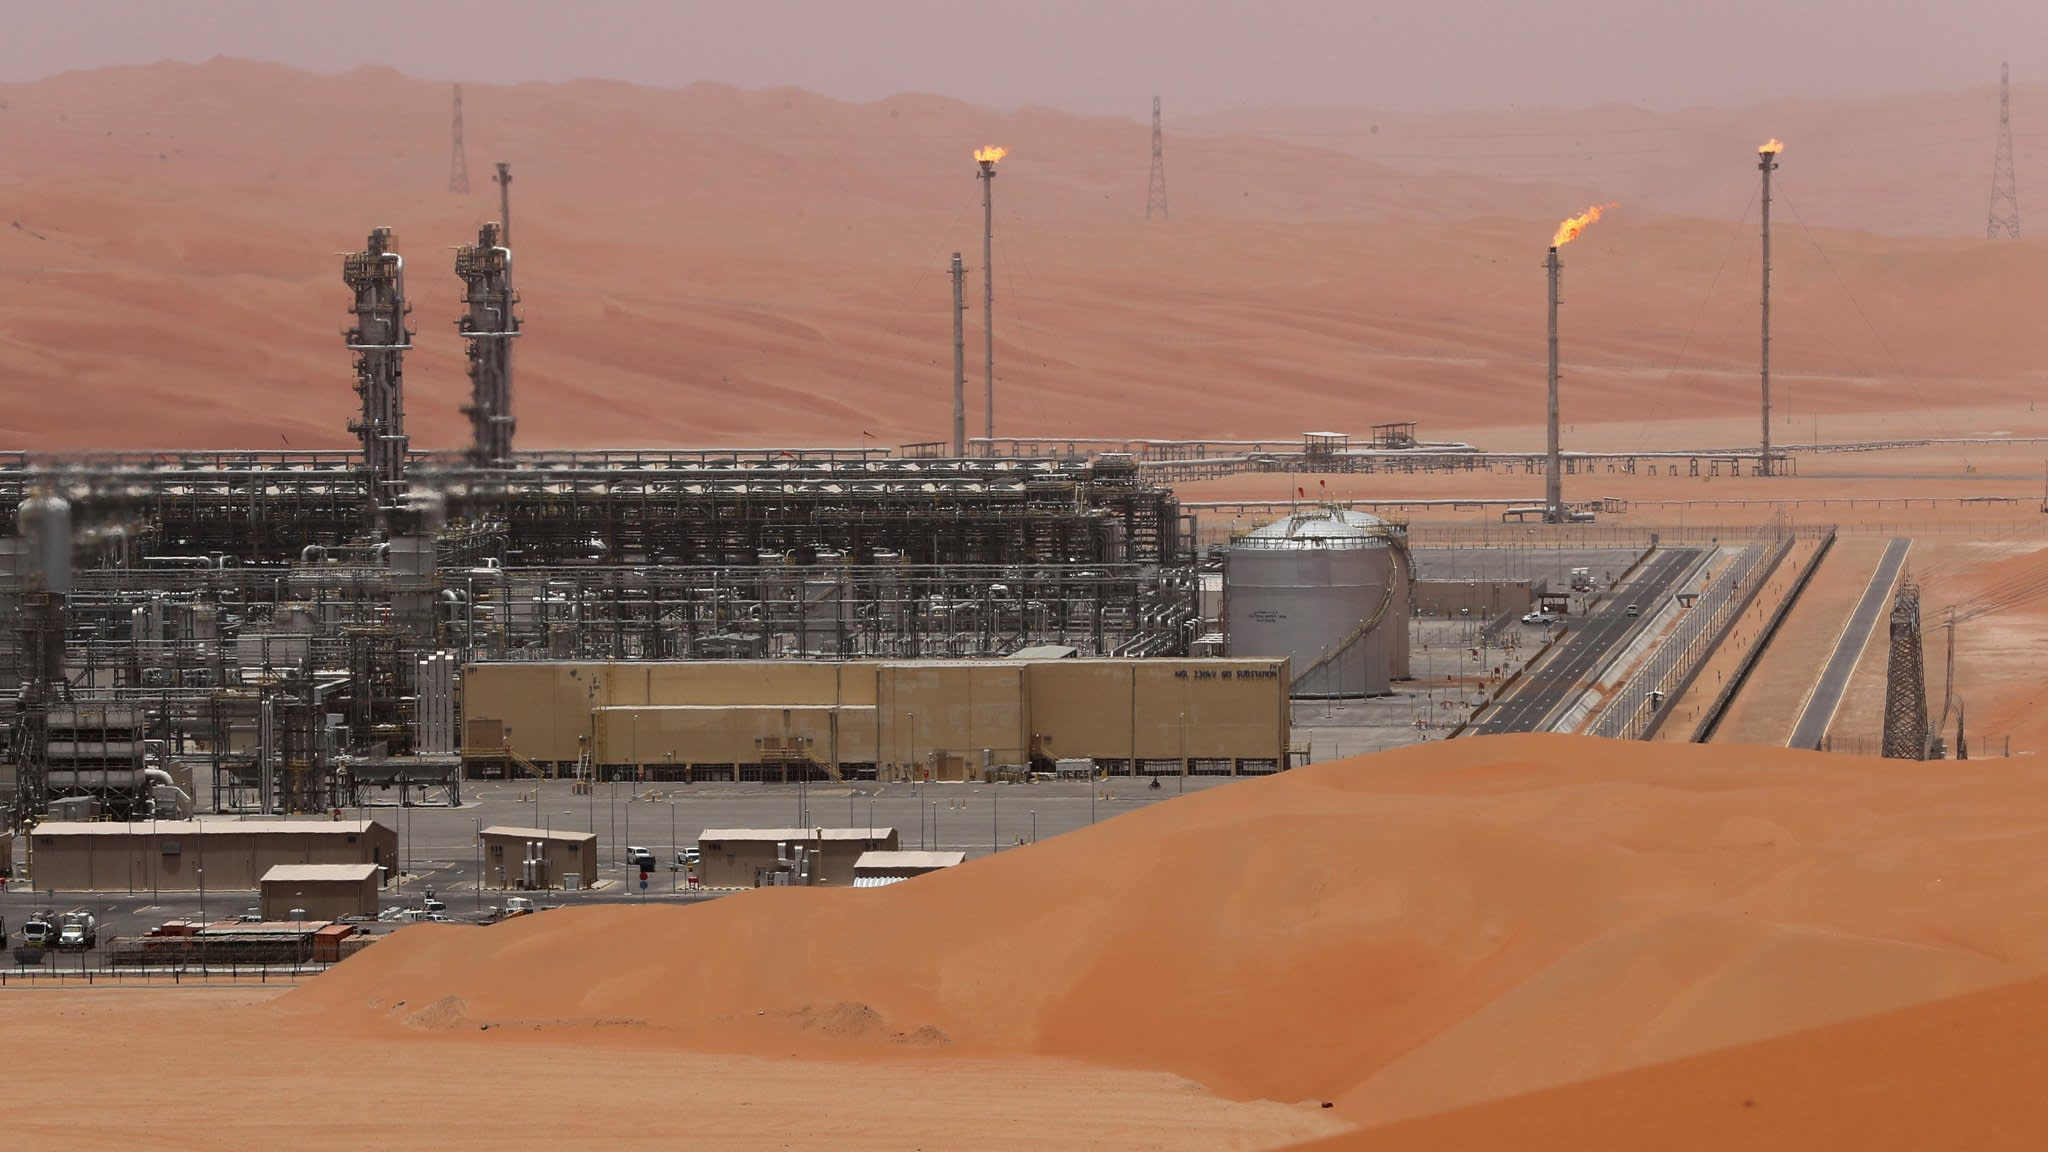 Saudi Aramco loses its 'in perpetuity' exclusive oil rights